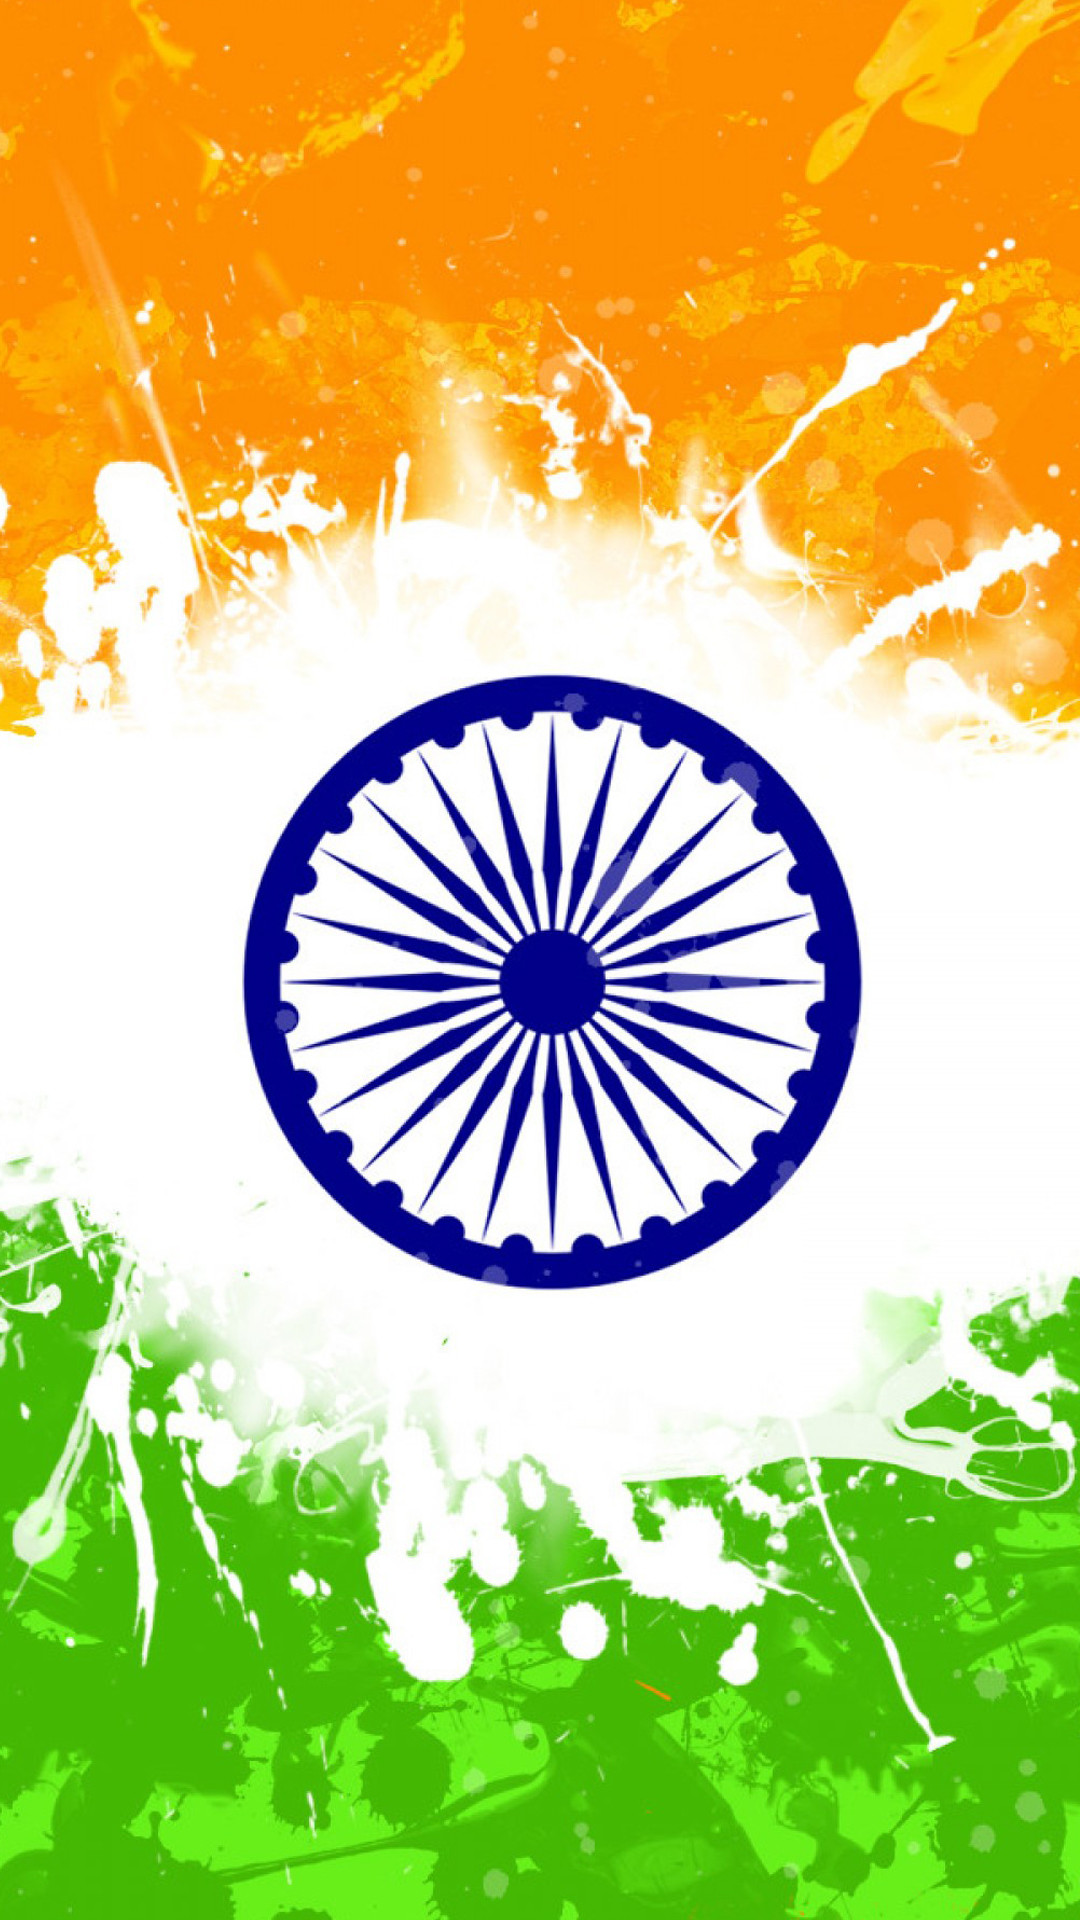 Indian Flag Hd Wallpapers - High Resolution India Flag , HD Wallpaper & Backgrounds